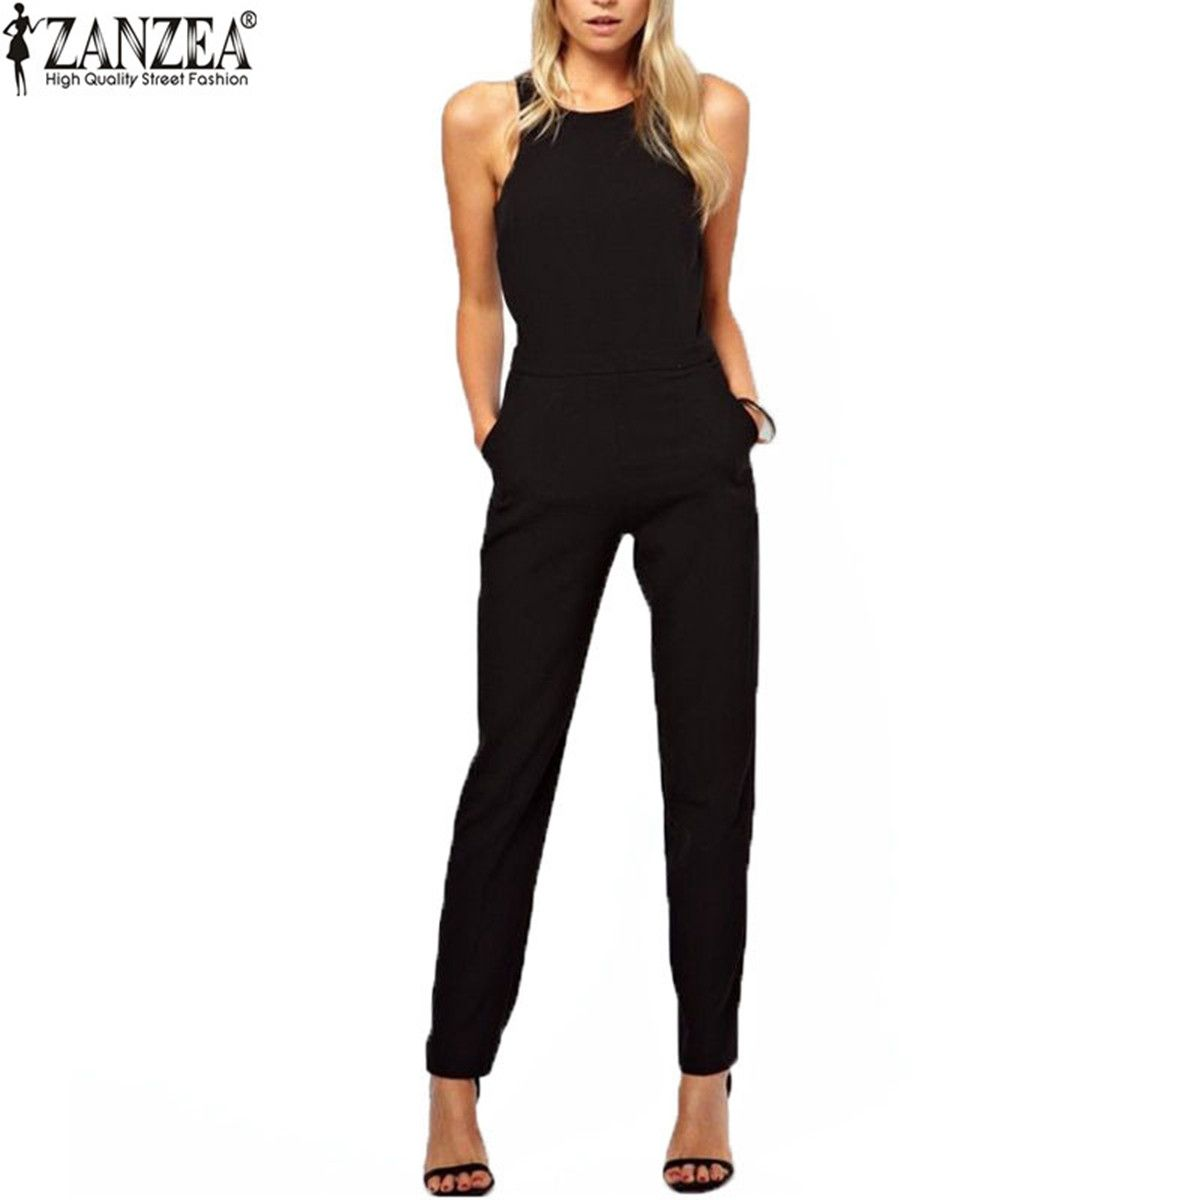 Zanzea <font><b>Brand</b></font> 2018 Summer Elegant Womens Rompers Jumpsuit Casual Solid Bodysuit Sleeveless Crew Neck Long Playsuits Plus Size